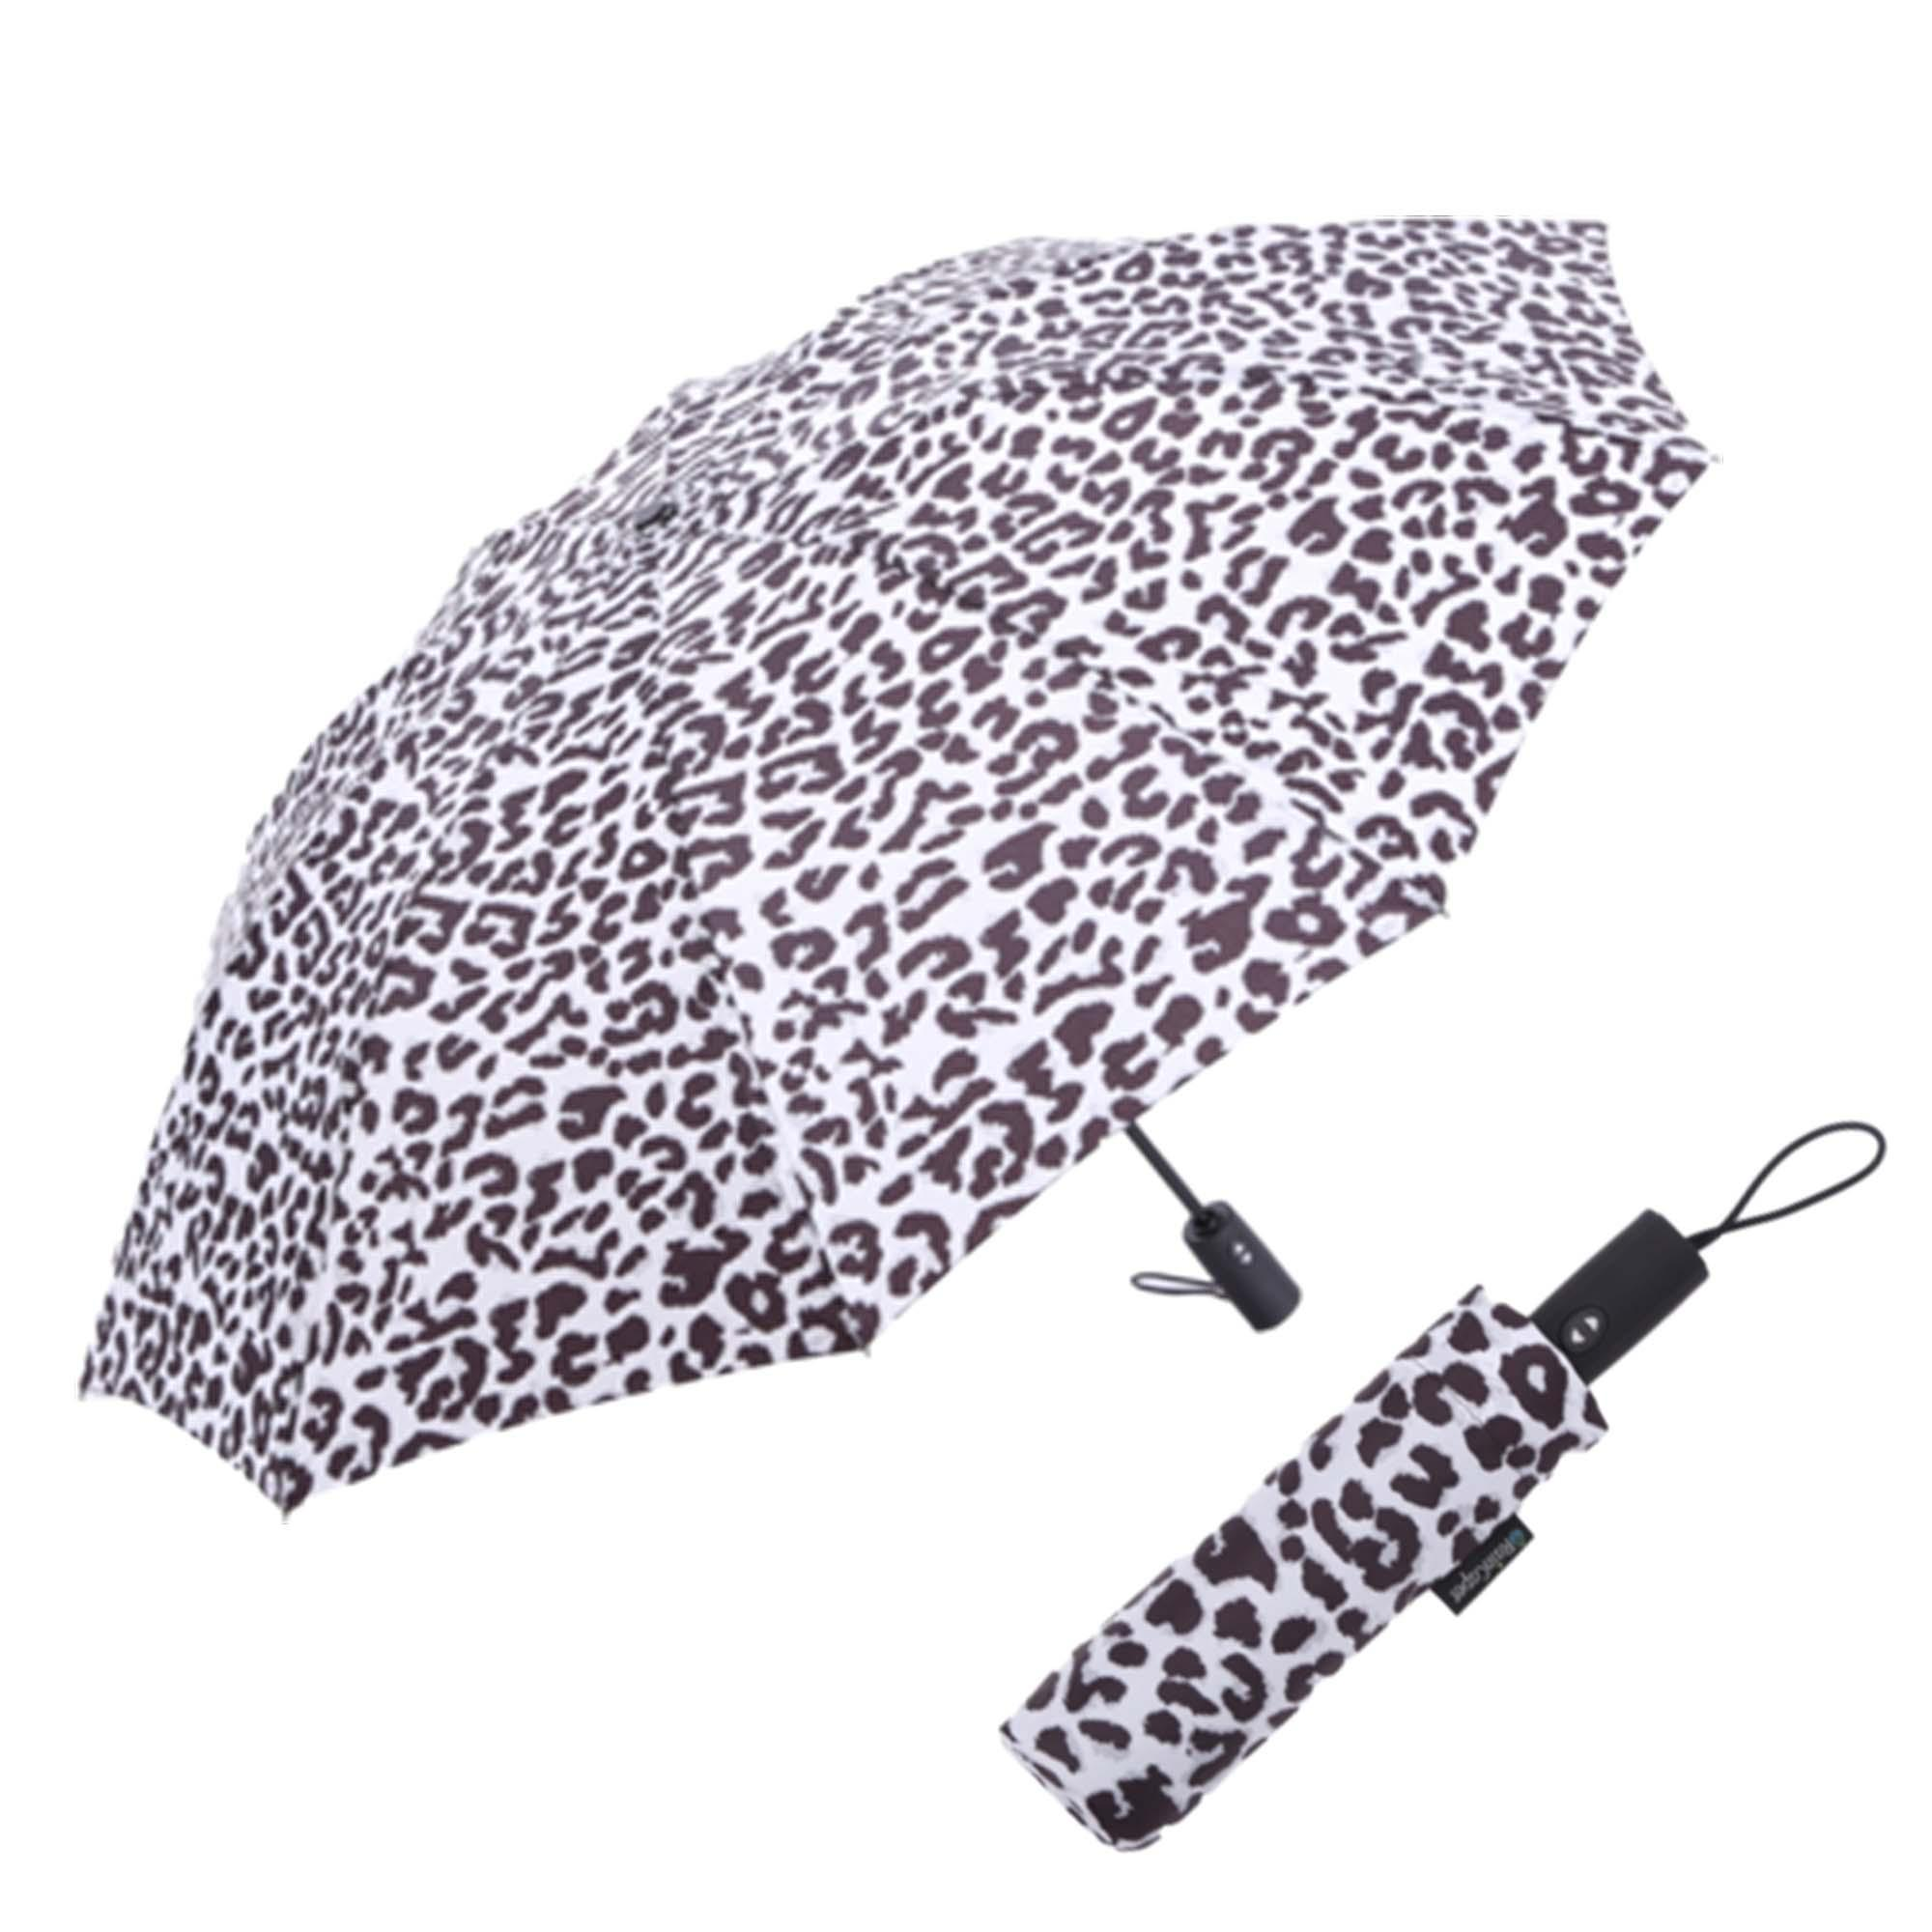 RainCaper Black & White Animal Print Folding Travel Umbrella